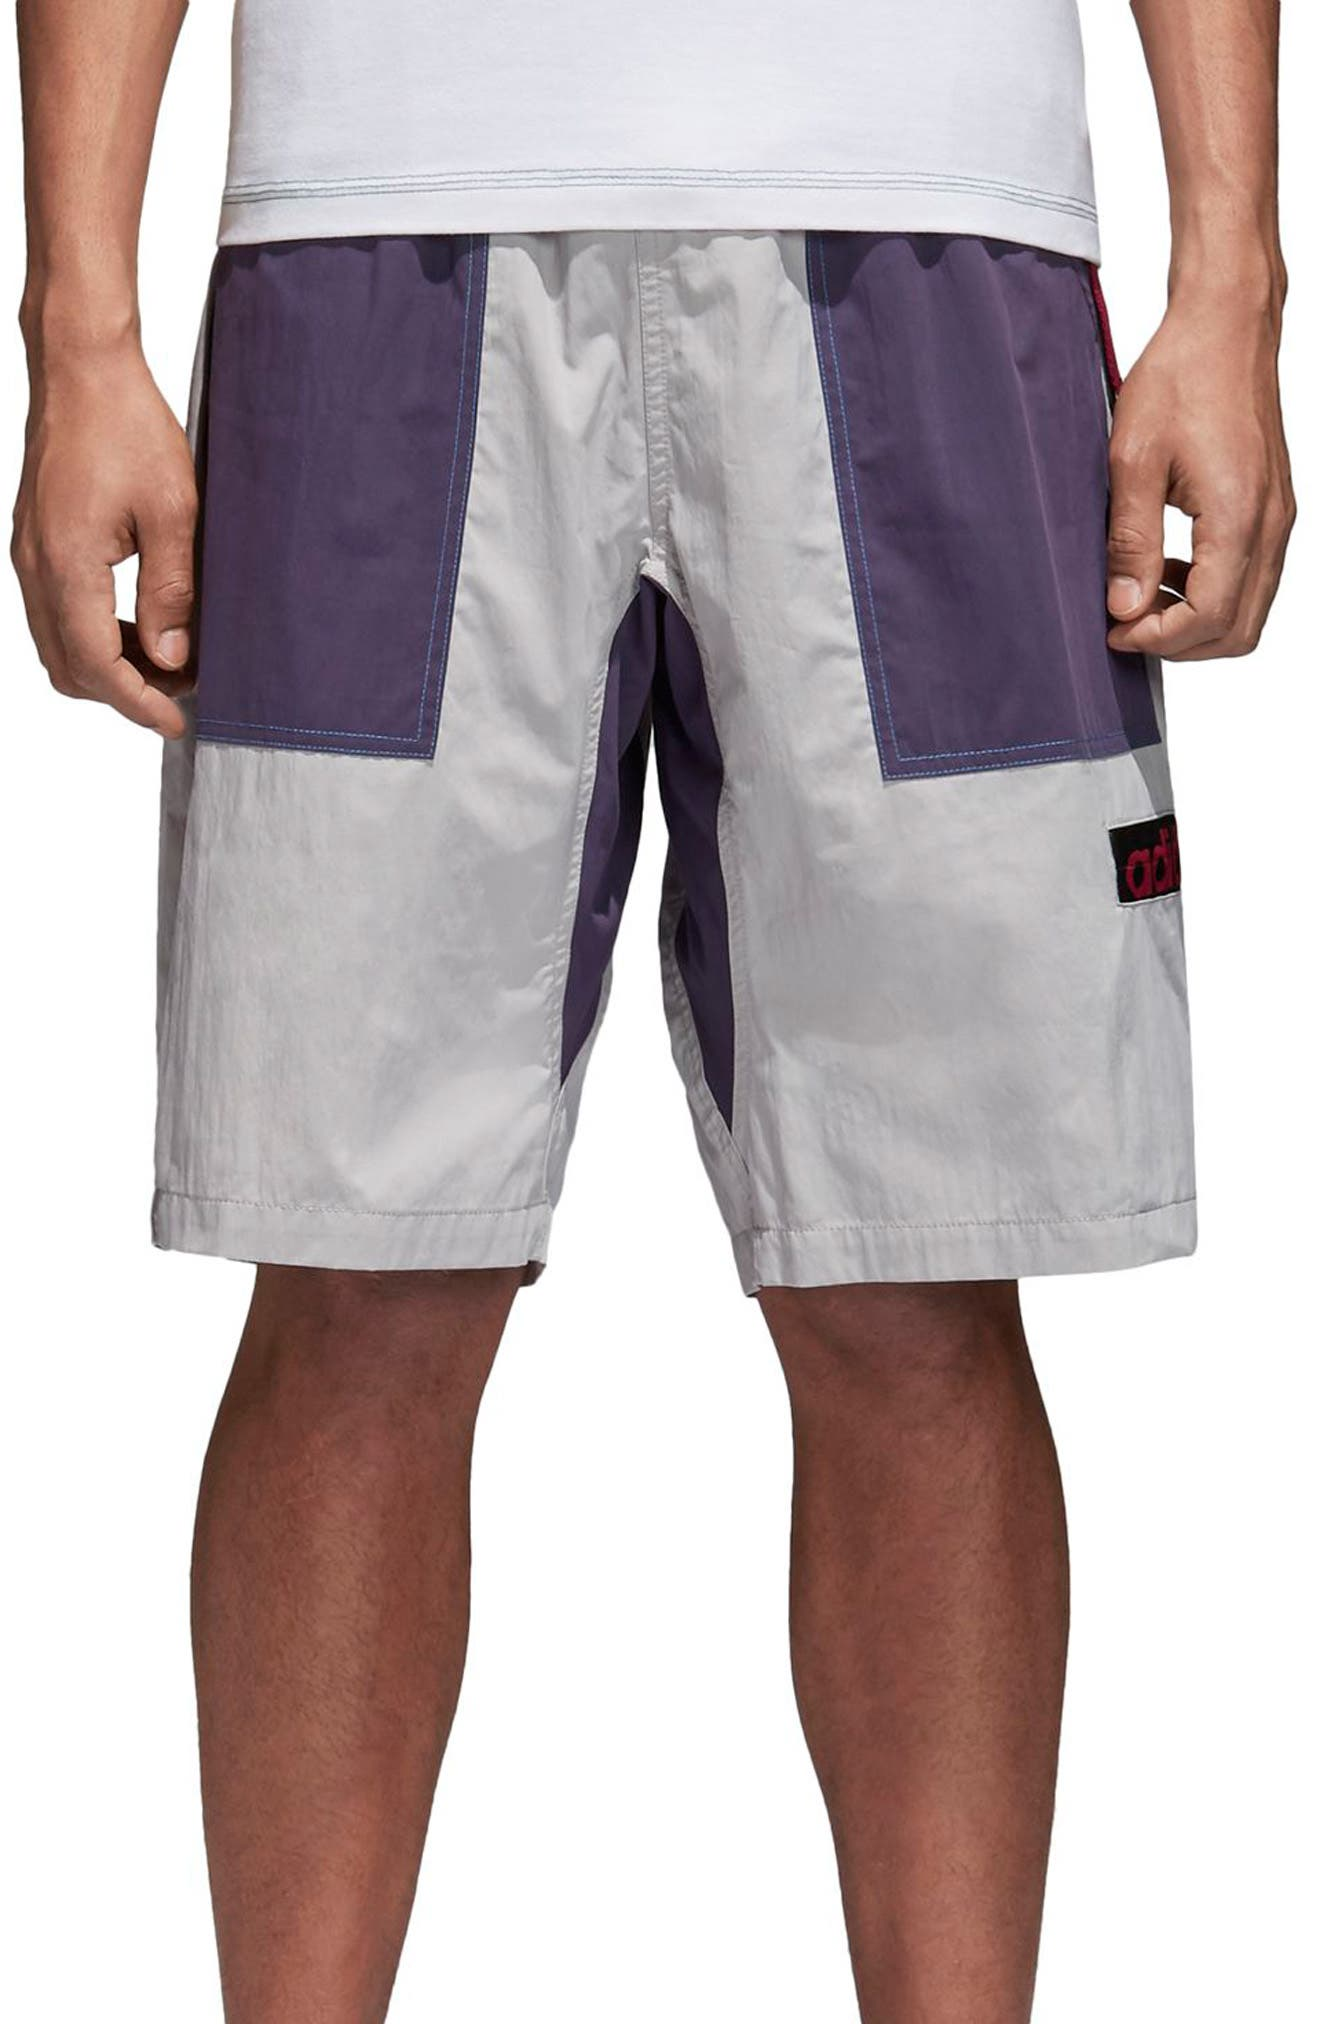 Atric Shorts,                         Main,                         color, Grey Two